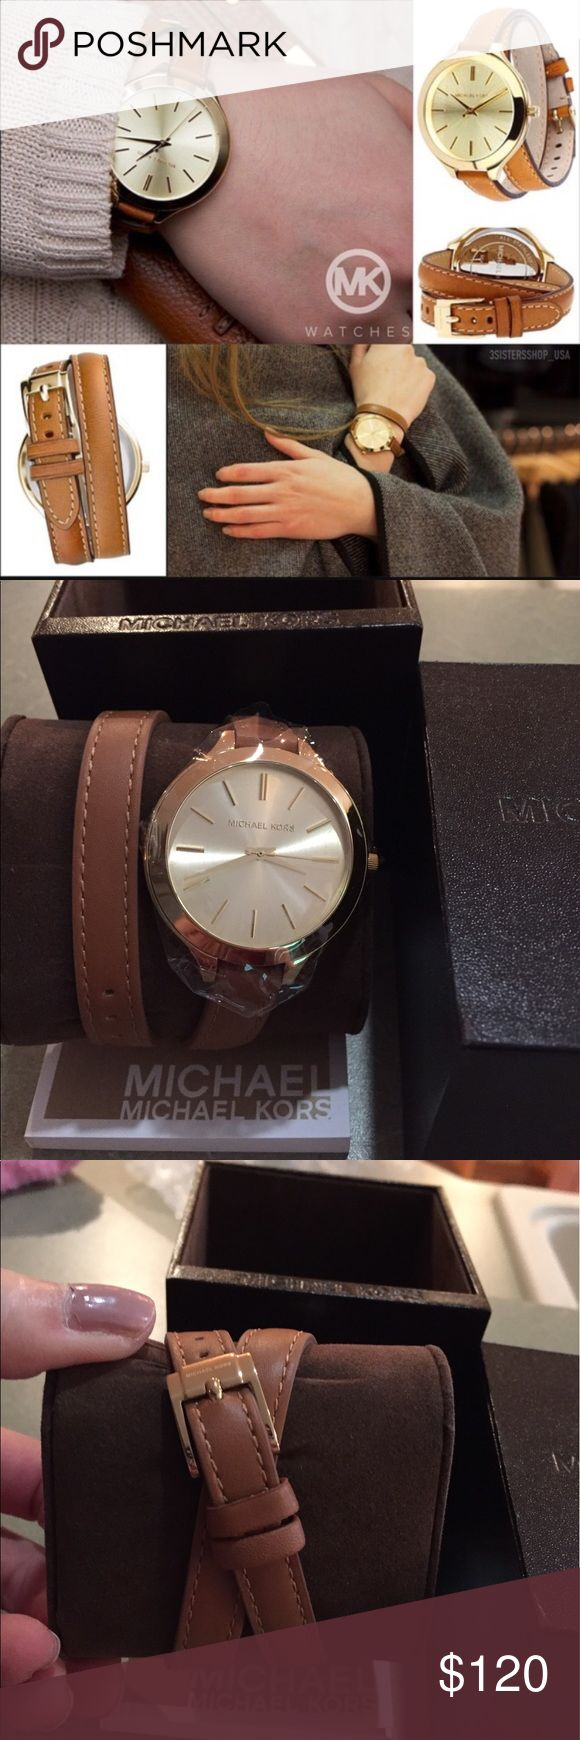 New Authentic Michael Kors Runway watch Brand new. Plastic still on the face. Michael Kors Accessories Watches